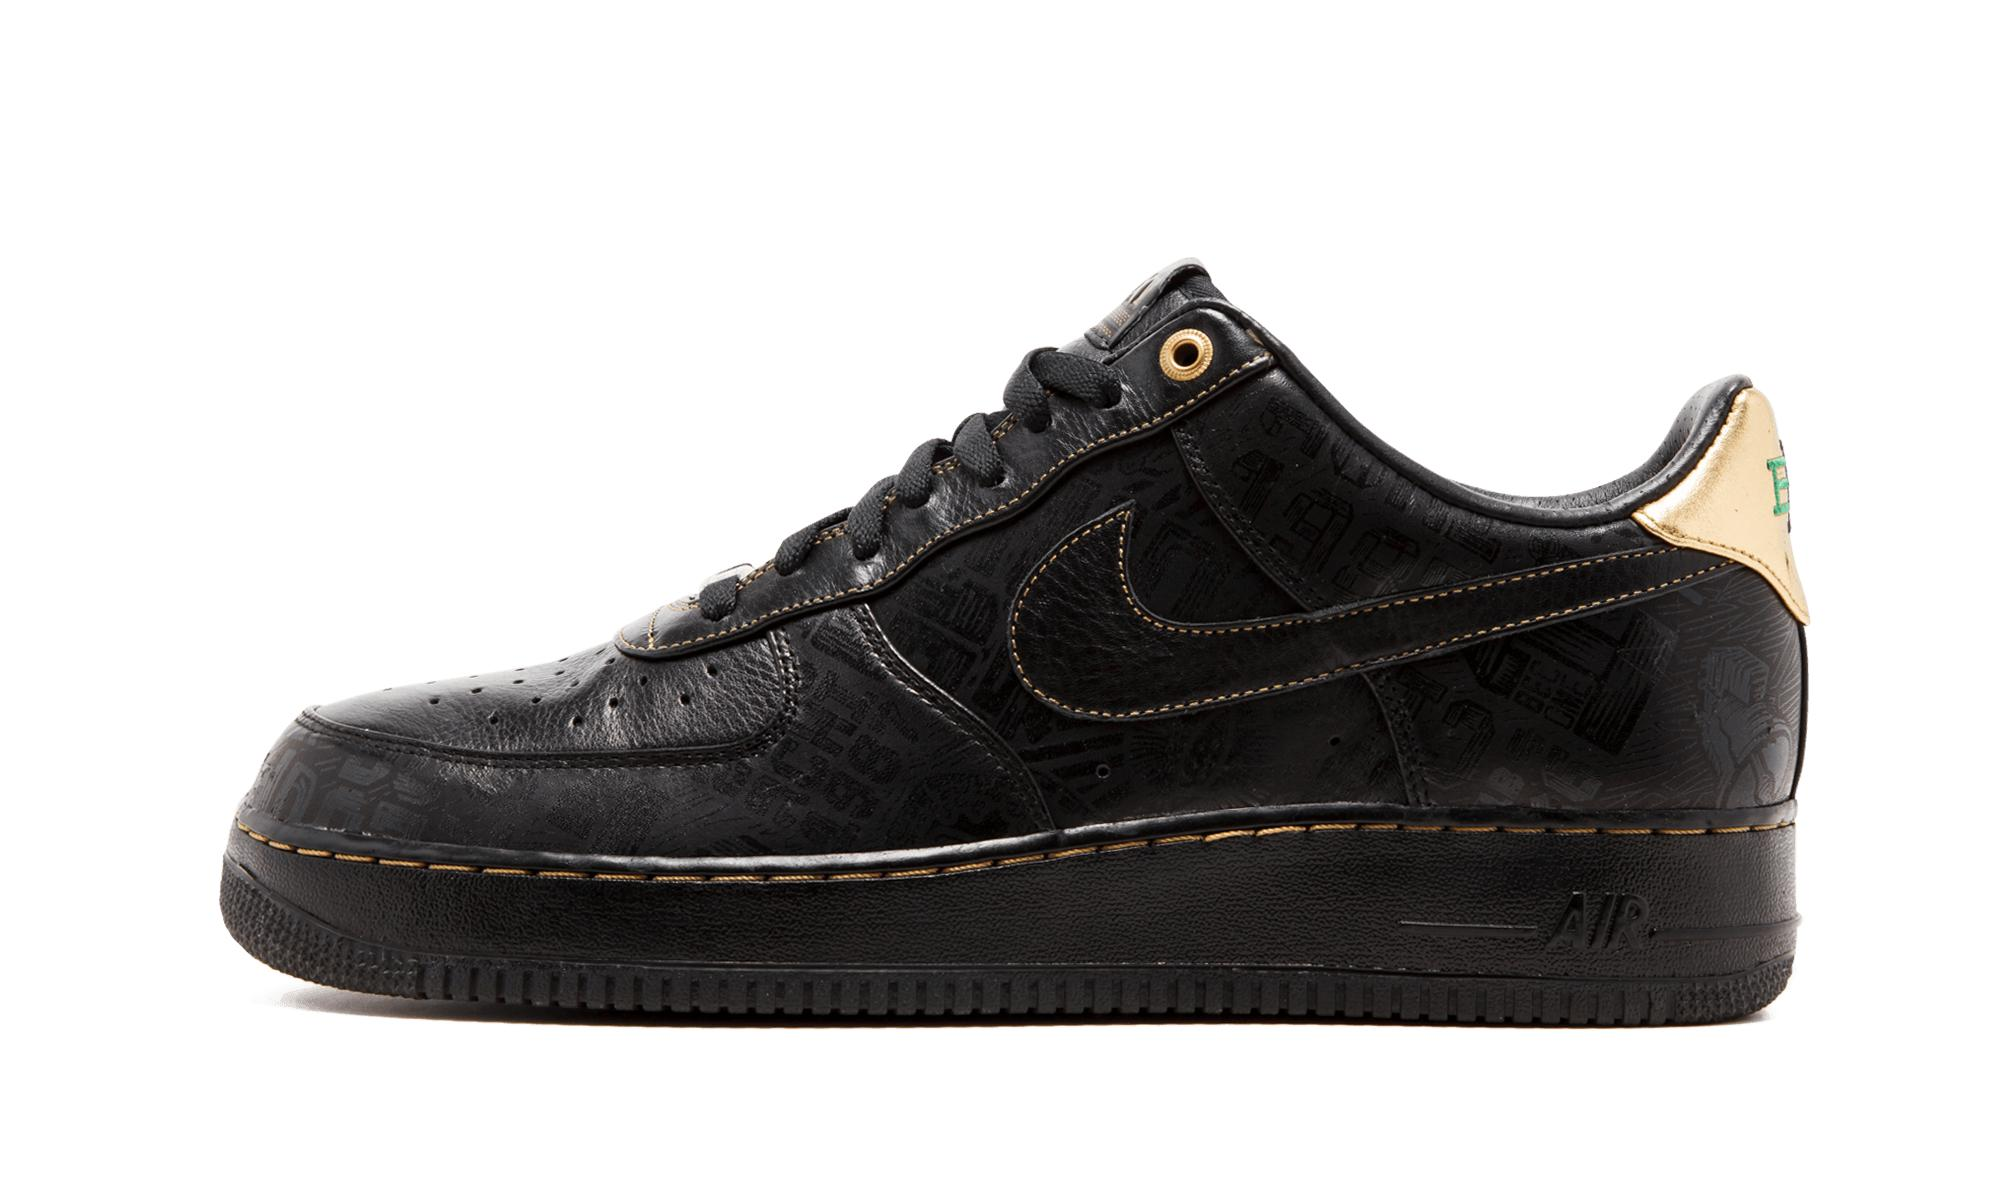 huge selection of 89ea8 6e58d Nike Air Force 1 Low Prm Bhm in Black for Men - Lyst